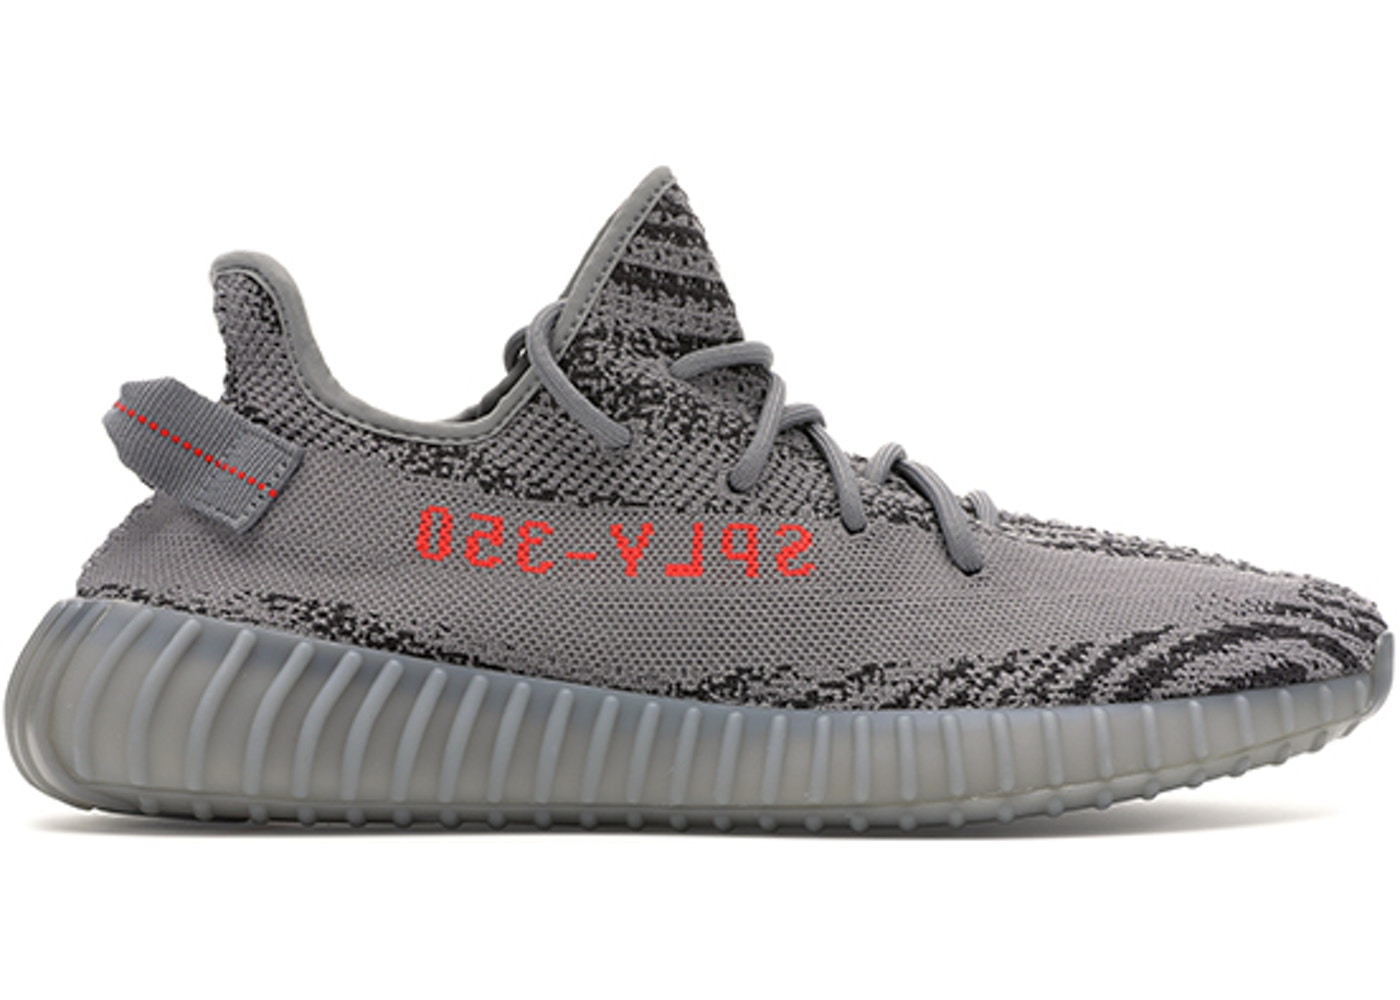 yeezy boost 350 low price